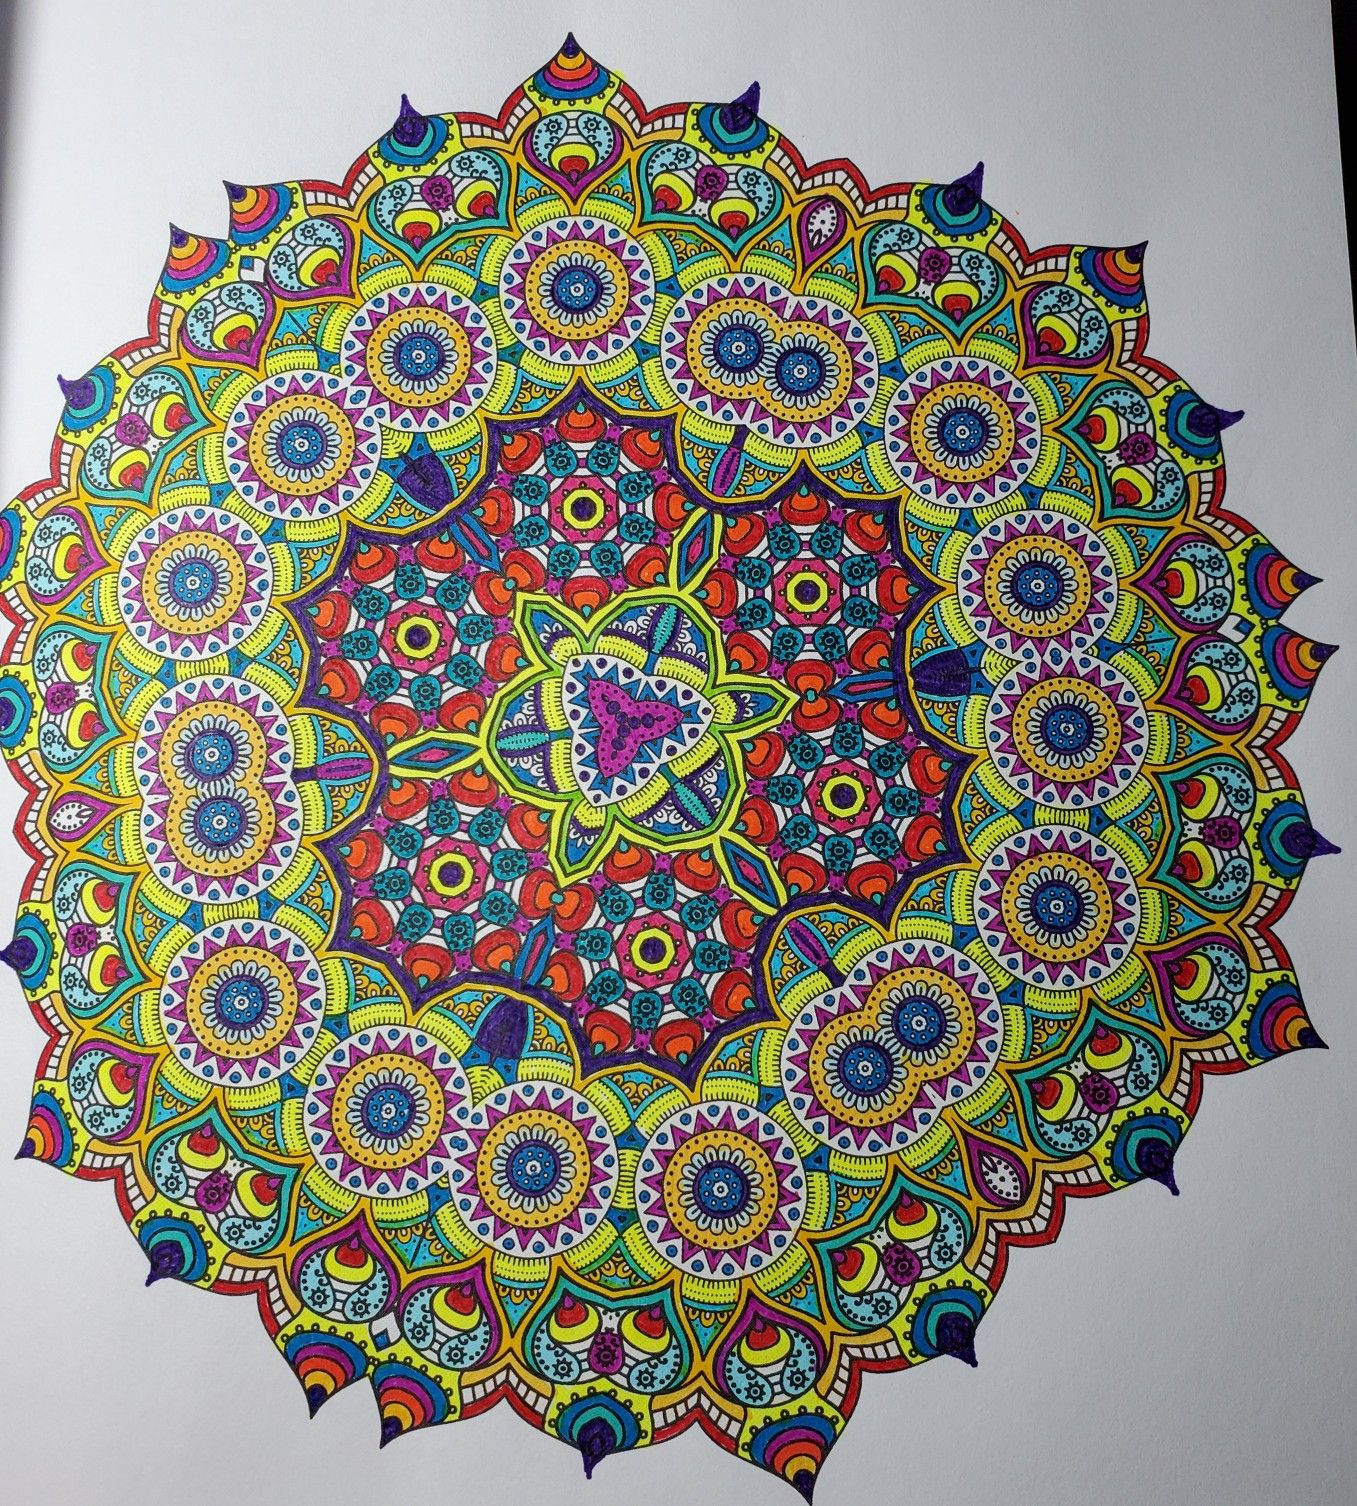 Insane Mandalas Vol 3 The World S Hardest Coloring Book By Marti Jo S In 2020 Coloring Books Coloring Book Art Book Art